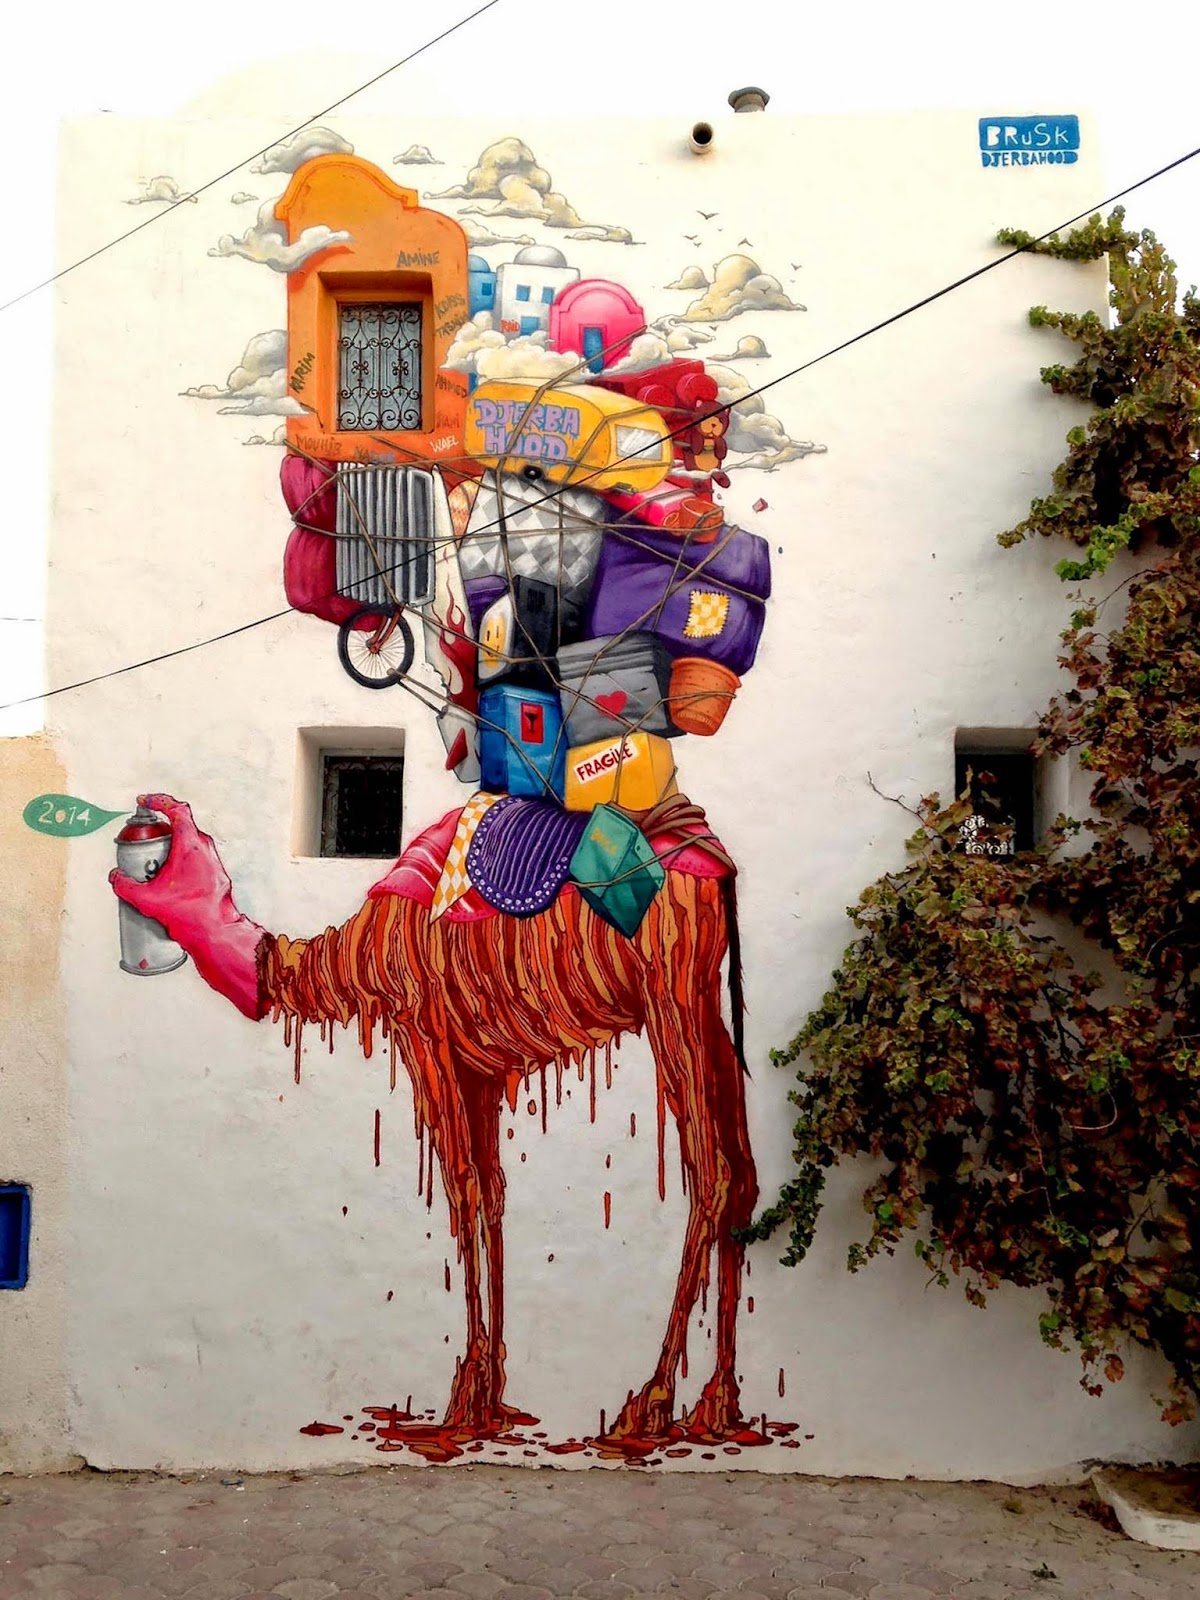 Brusk is also in Tunisia where he was invited to paint for the Djerbahood Project organised by Galerie Itinerrance.